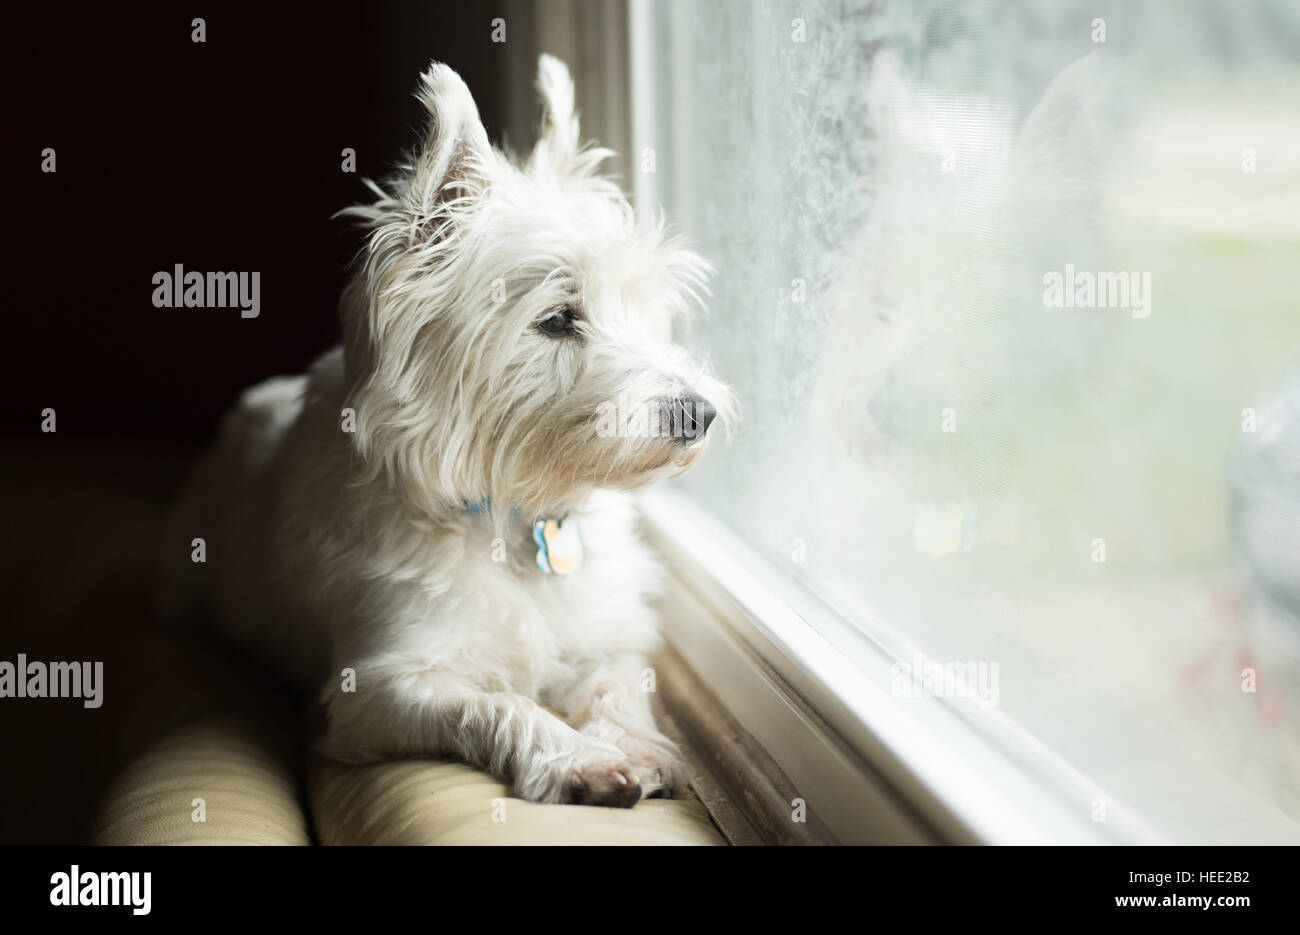 West Highland White Terrier - Stock Image